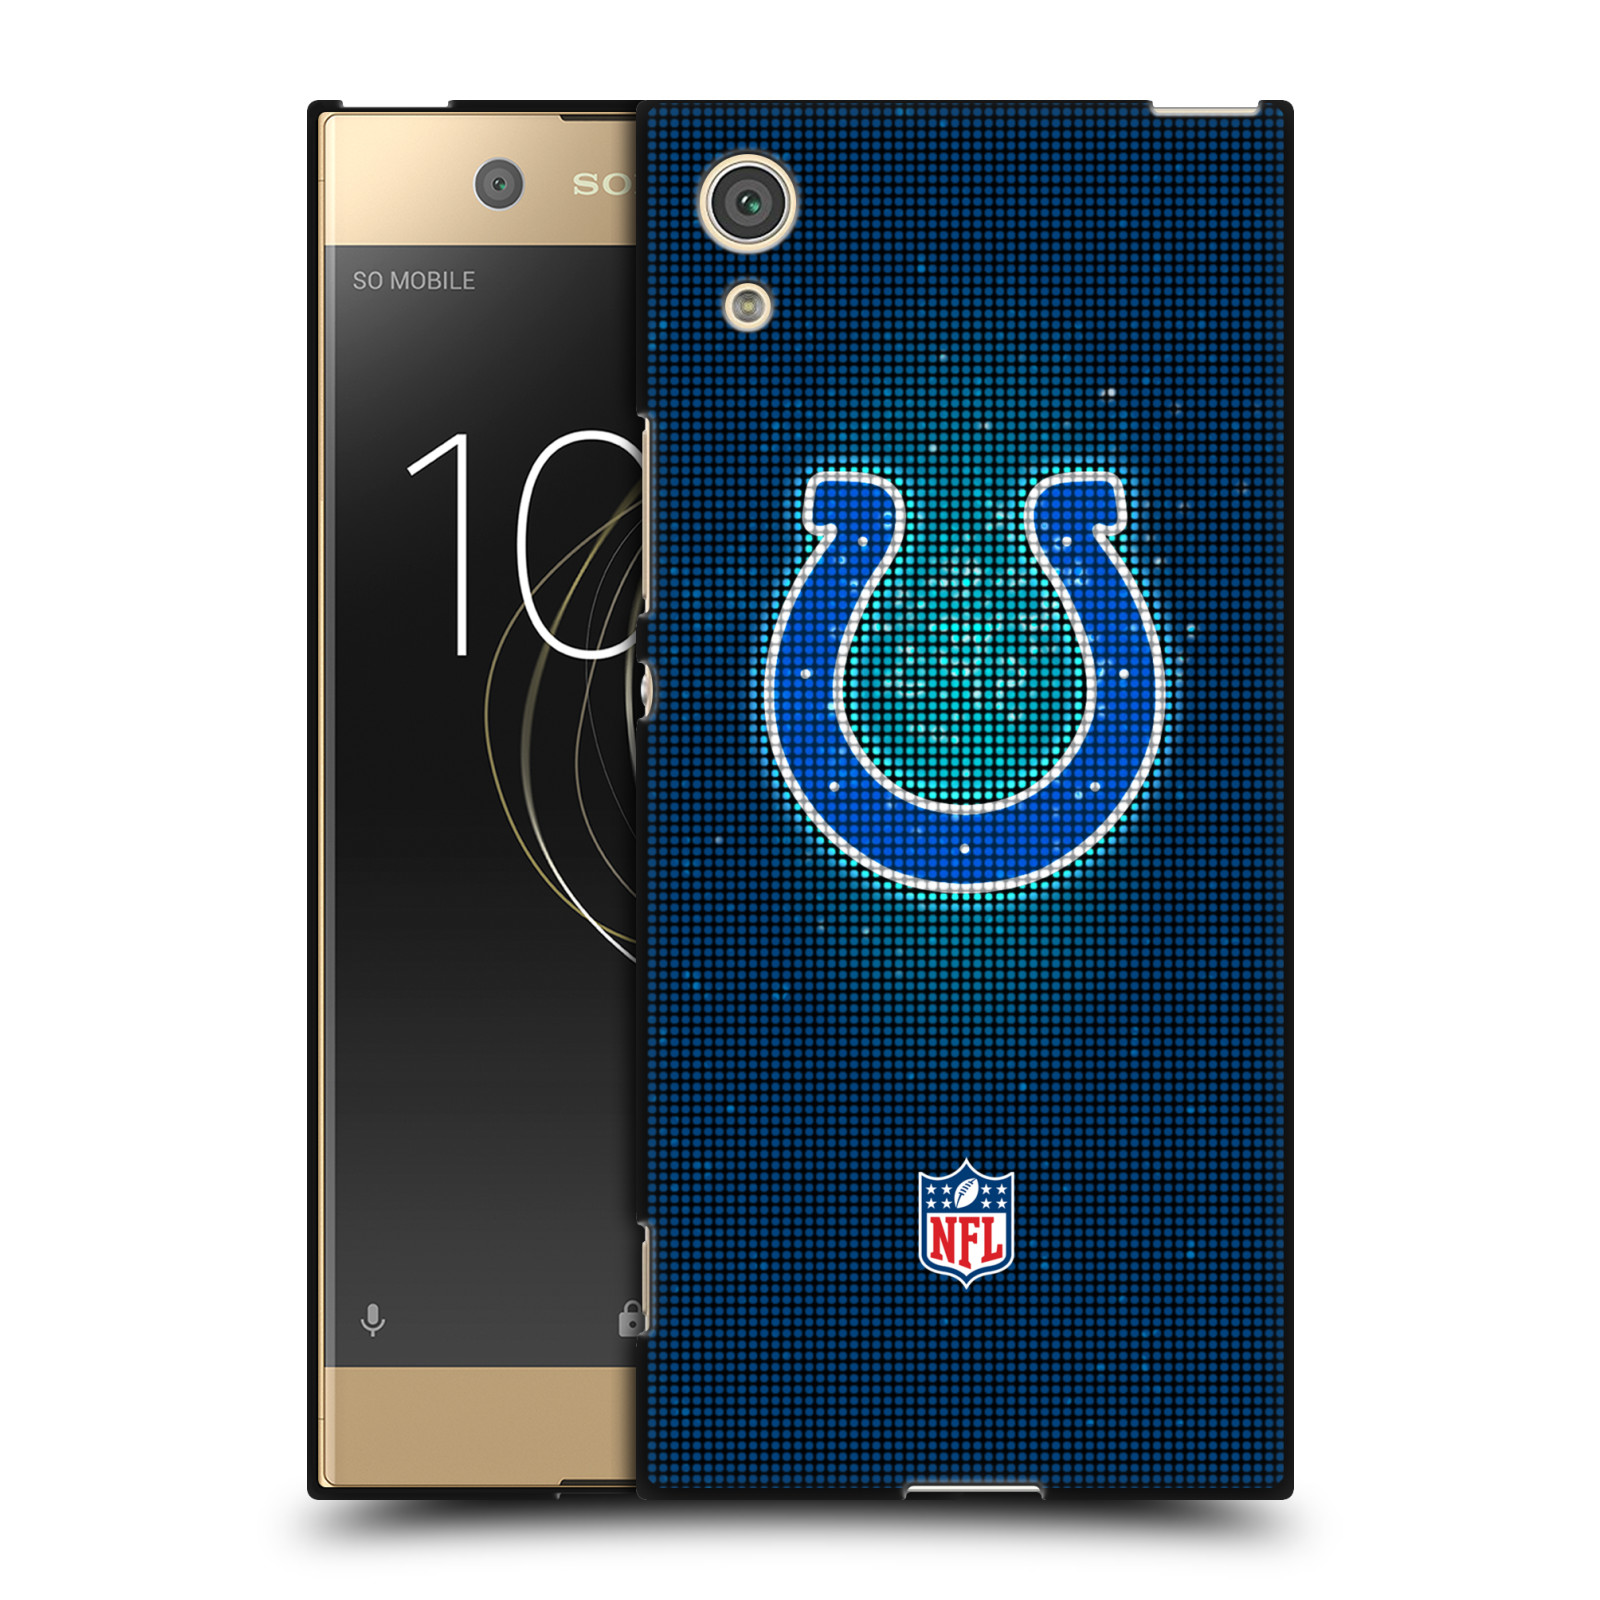 OFFIZIELLE-NFL-2017-18-INDIANAPOLIS-COLTS-SOFT-GEL-HULLE-SCHWARZ-FUR-SONY-HANDYS